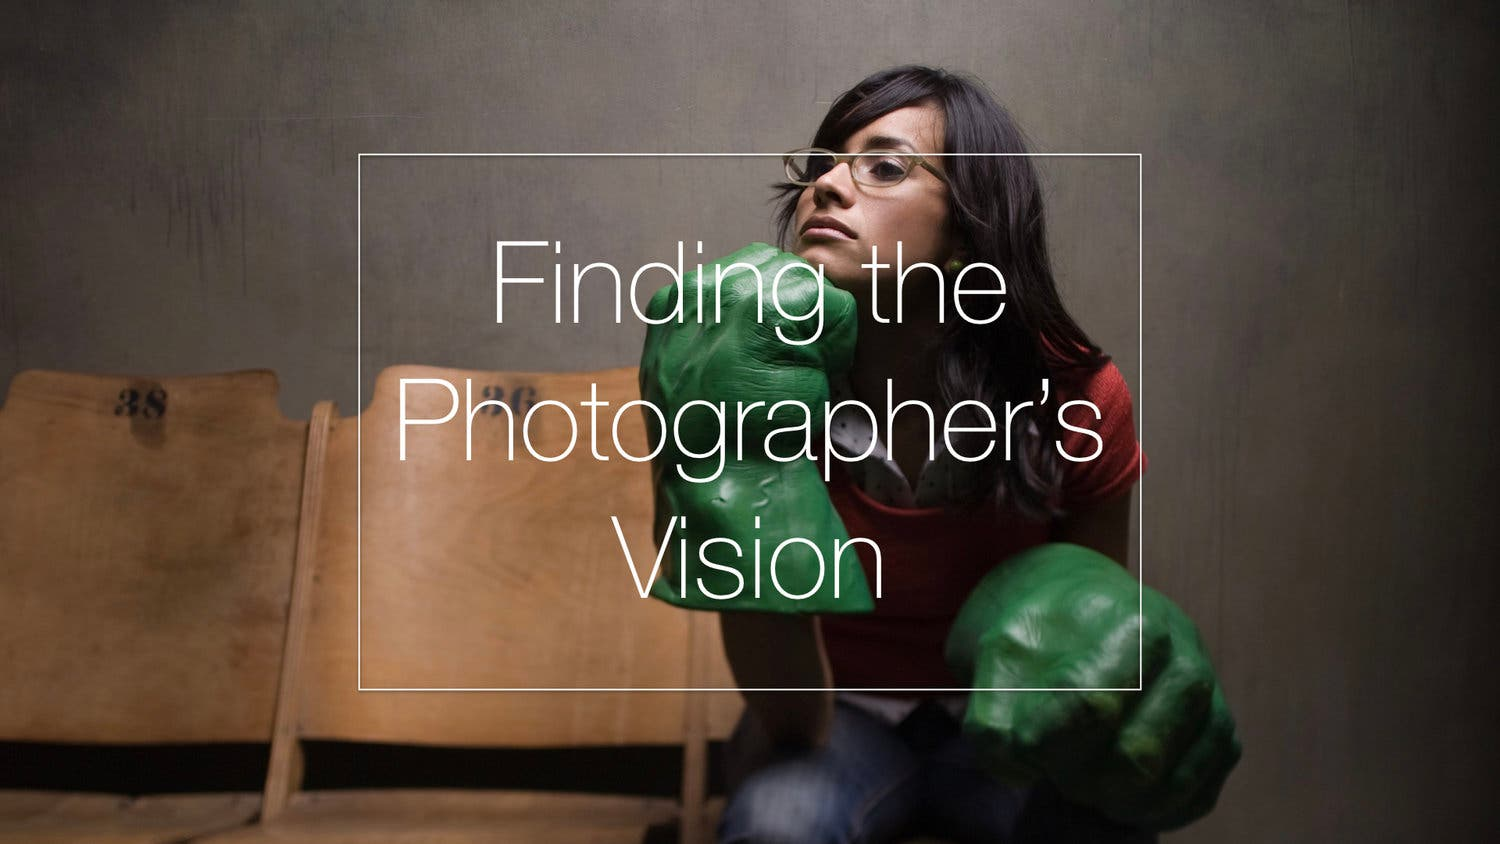 Photography Workshop Review: Finding the Photographer's Vision